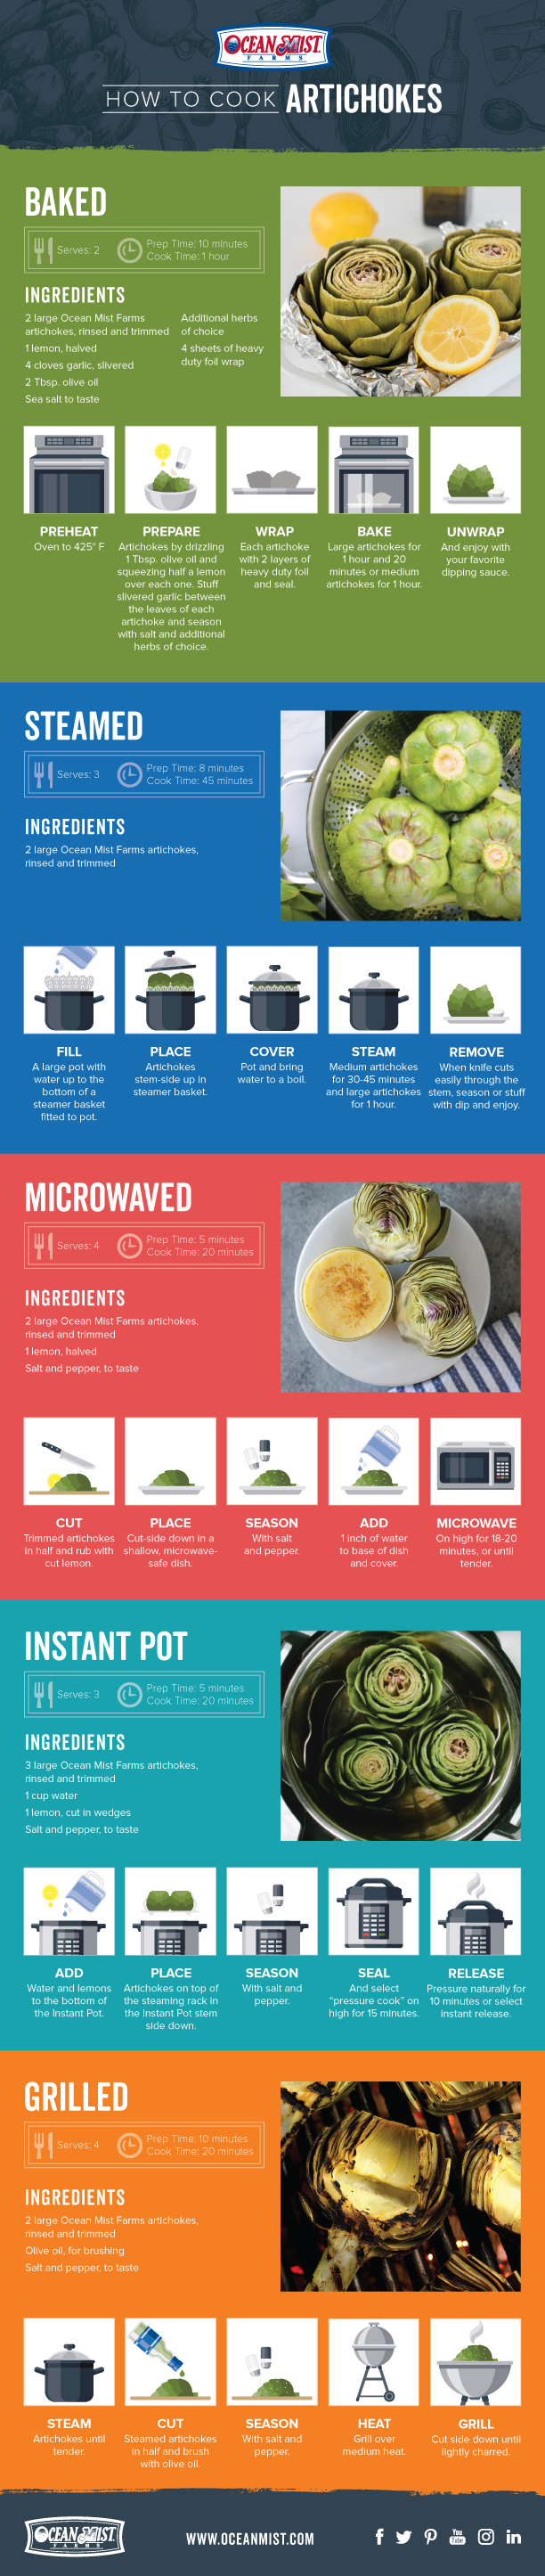 OM_How-to-Cook-Artichokes_Infographic